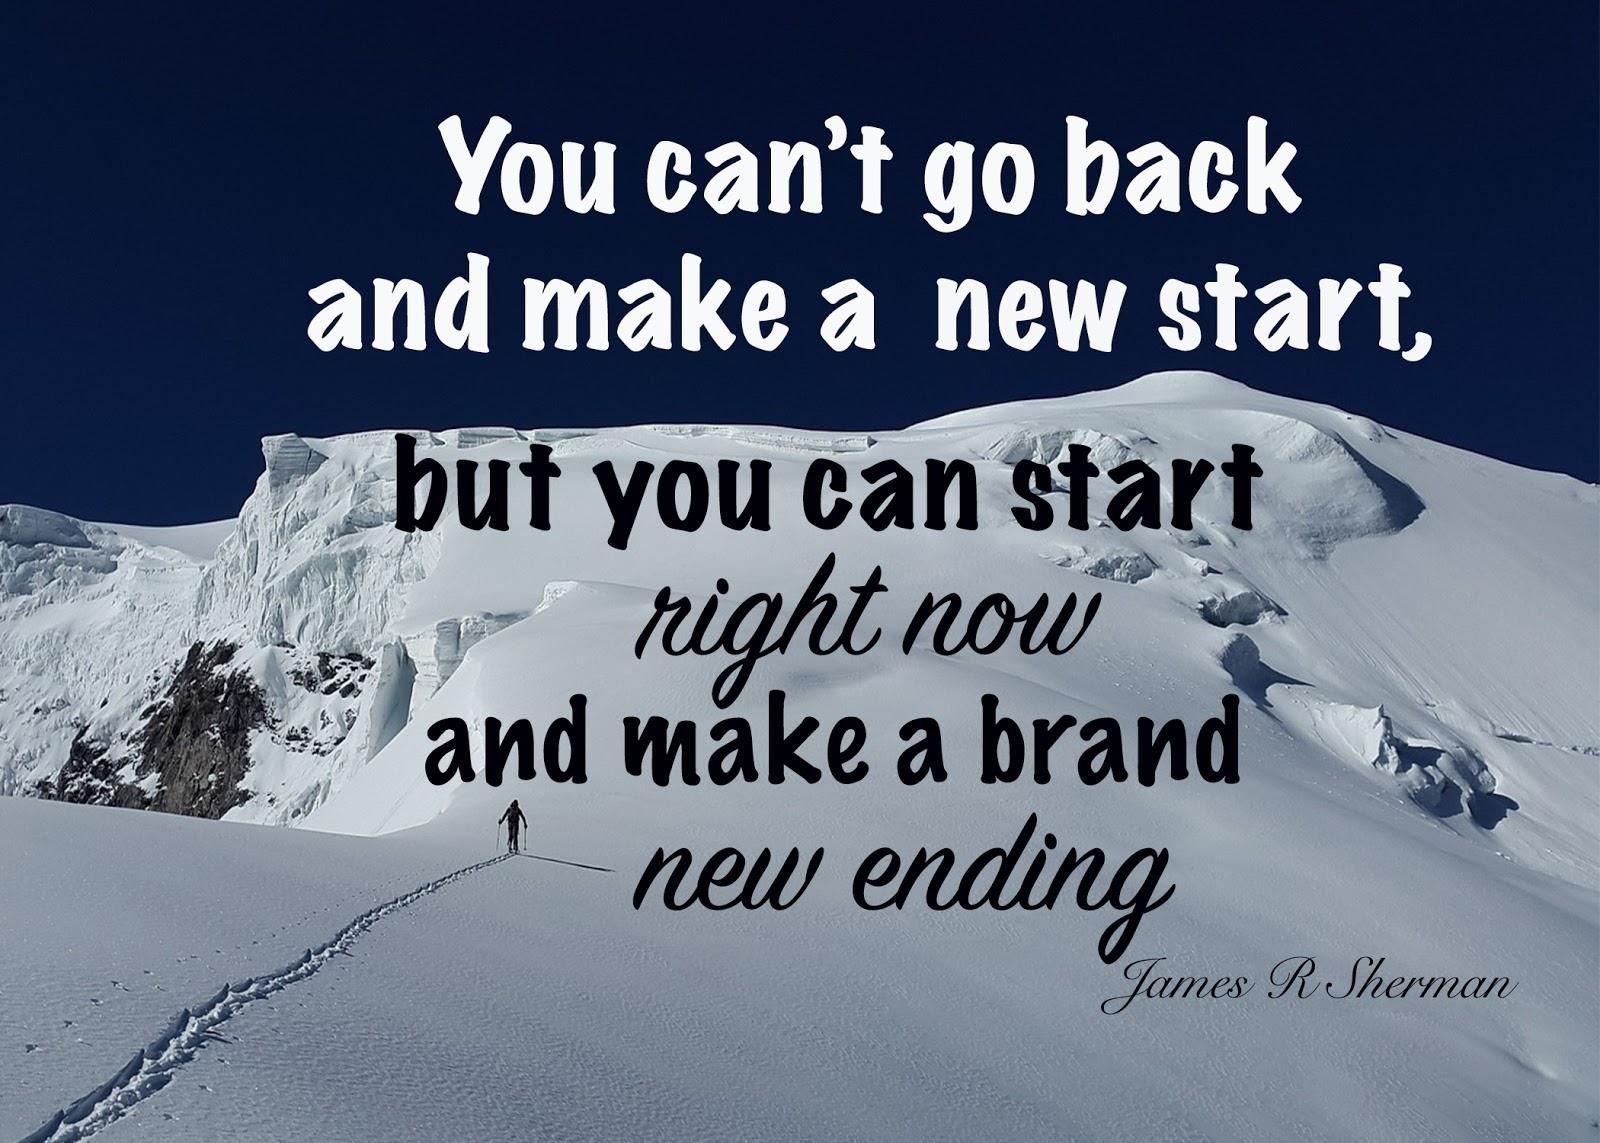 [Image] You can't go back and make a new start, but you can start right now and make a brand new ending!